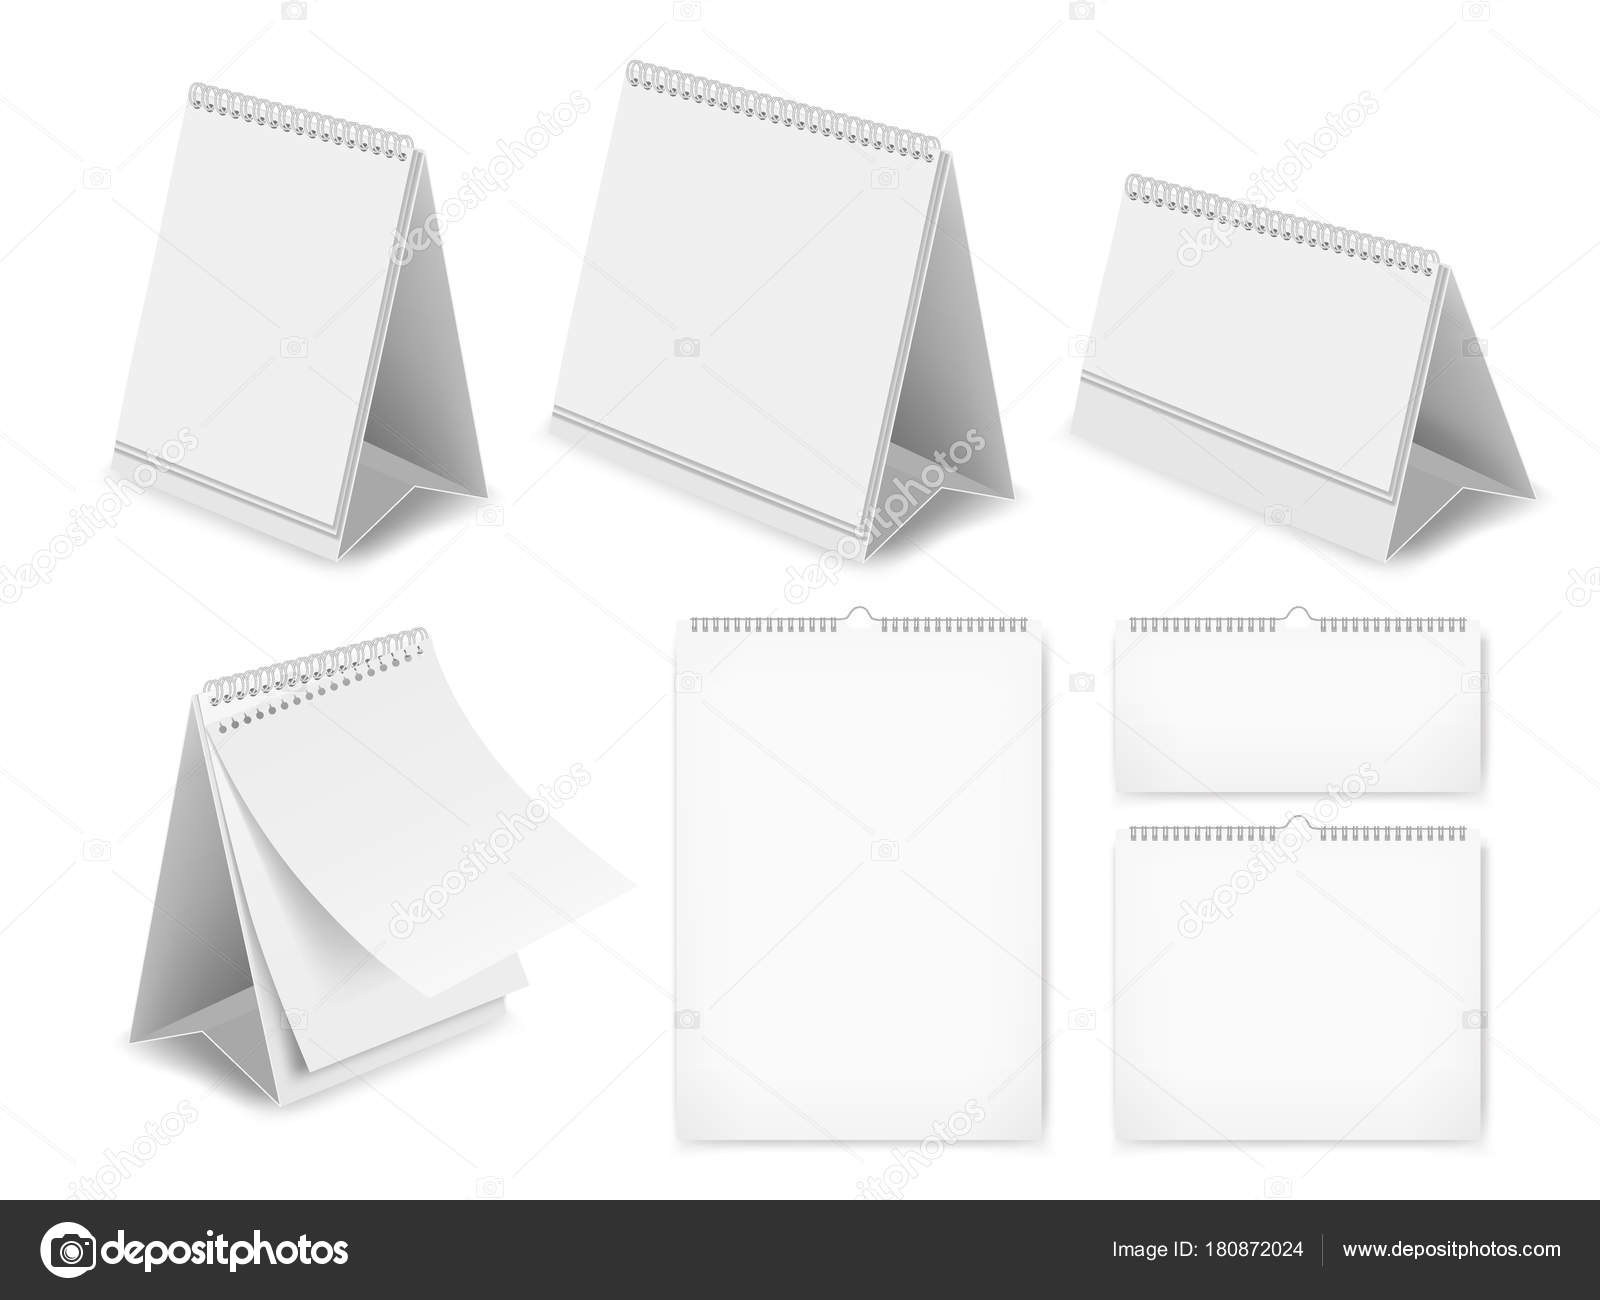 hight resolution of vector realistic illustration of white blank table calendars isolated on white background desk calendar mockups set vector by siberianart